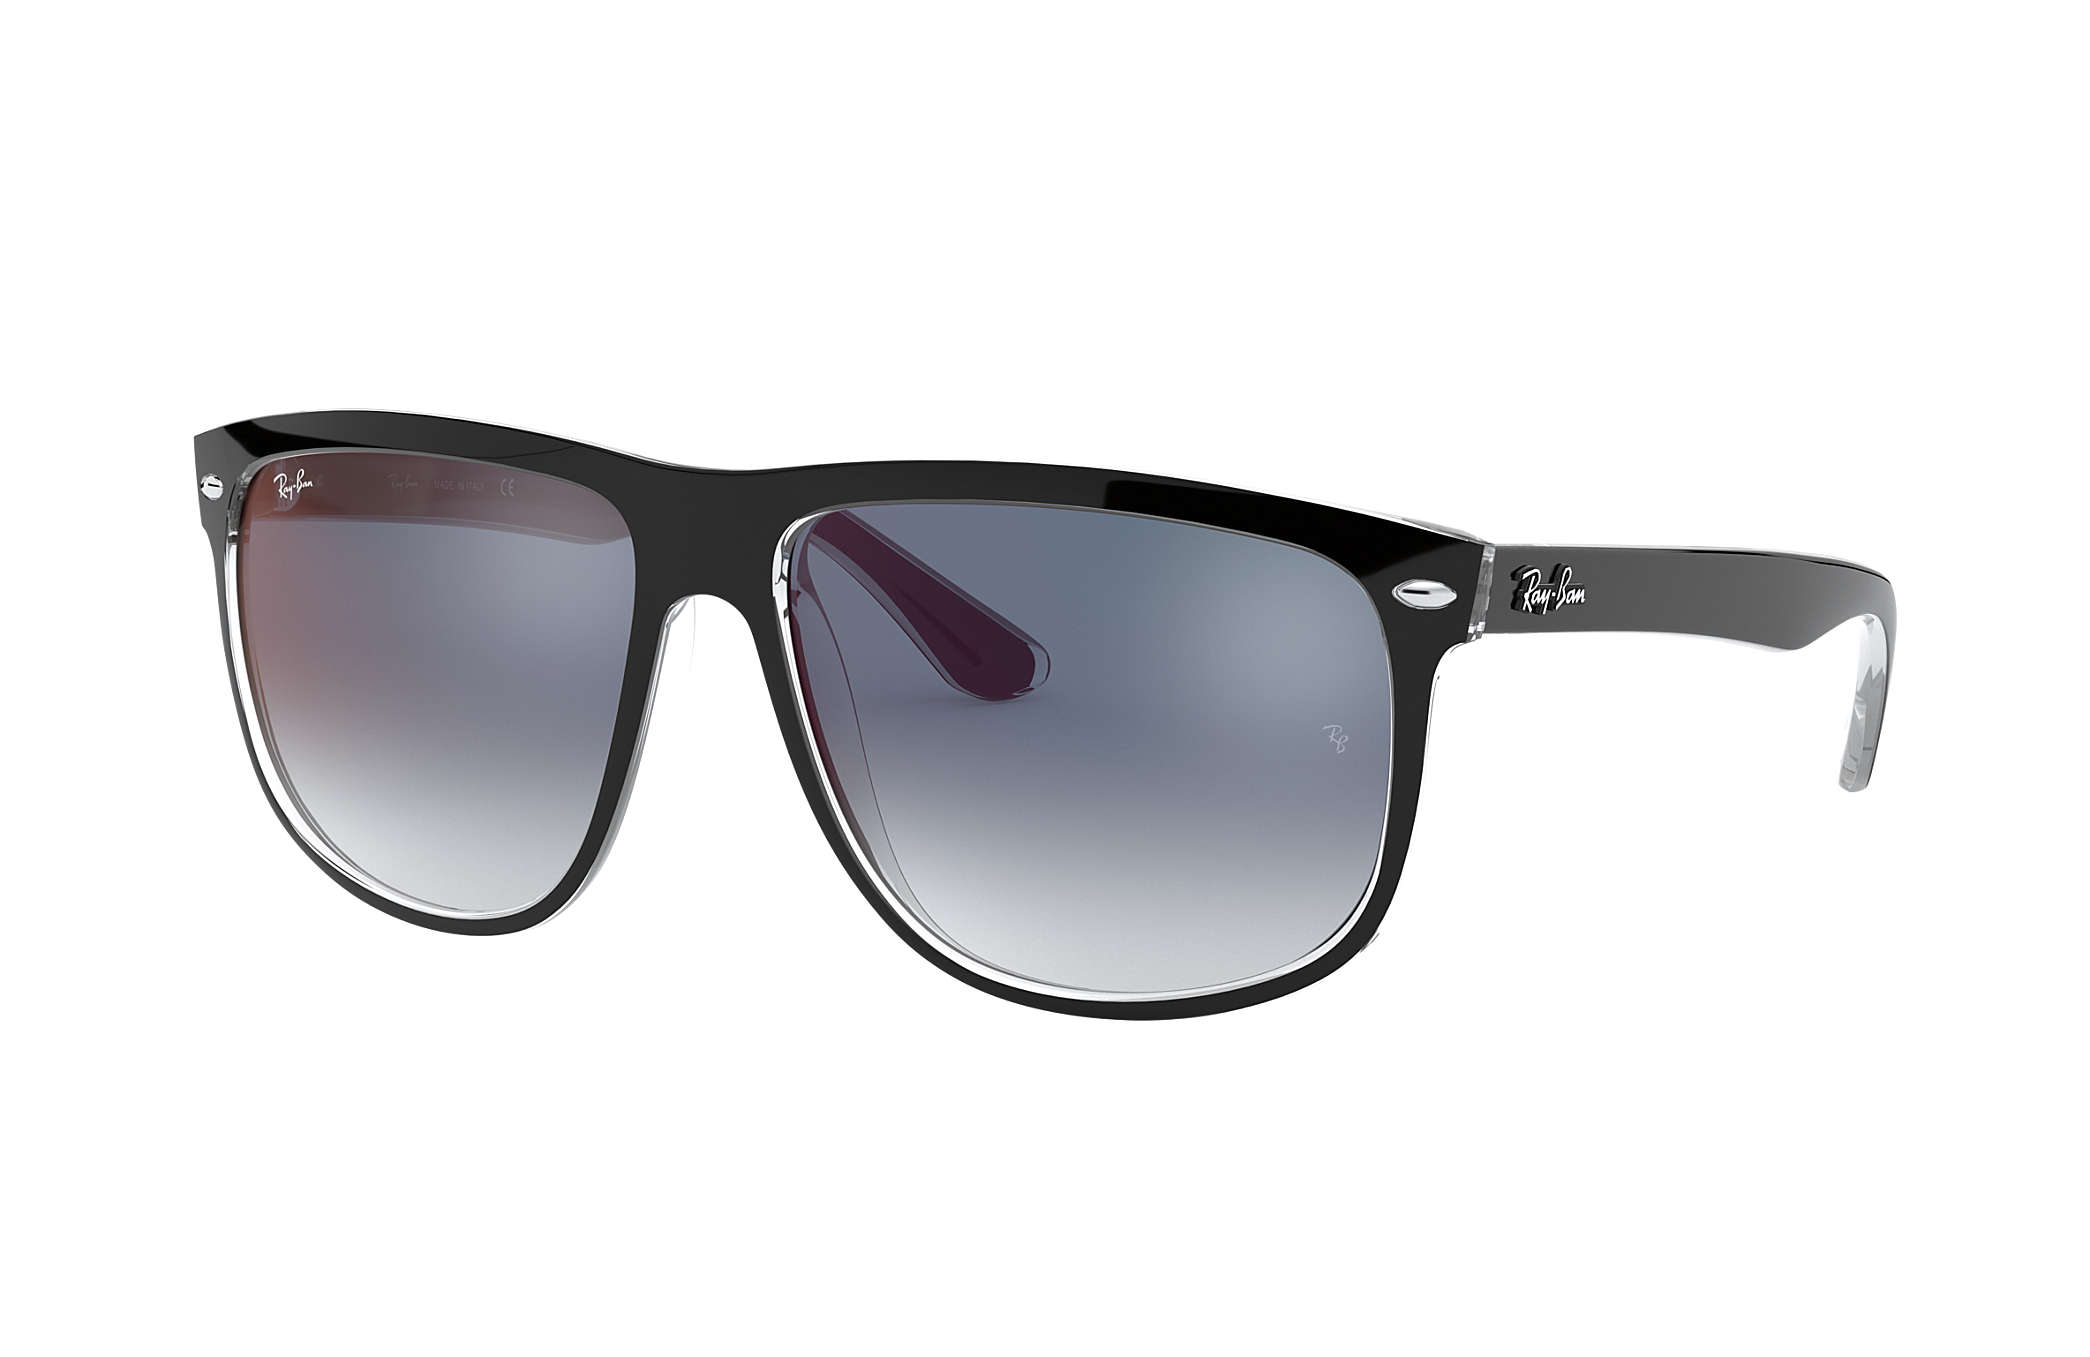 d8289c35916 ... order ray ban 0rb4147 rb4147 blacktransparent sun 7f1a9 aeed8